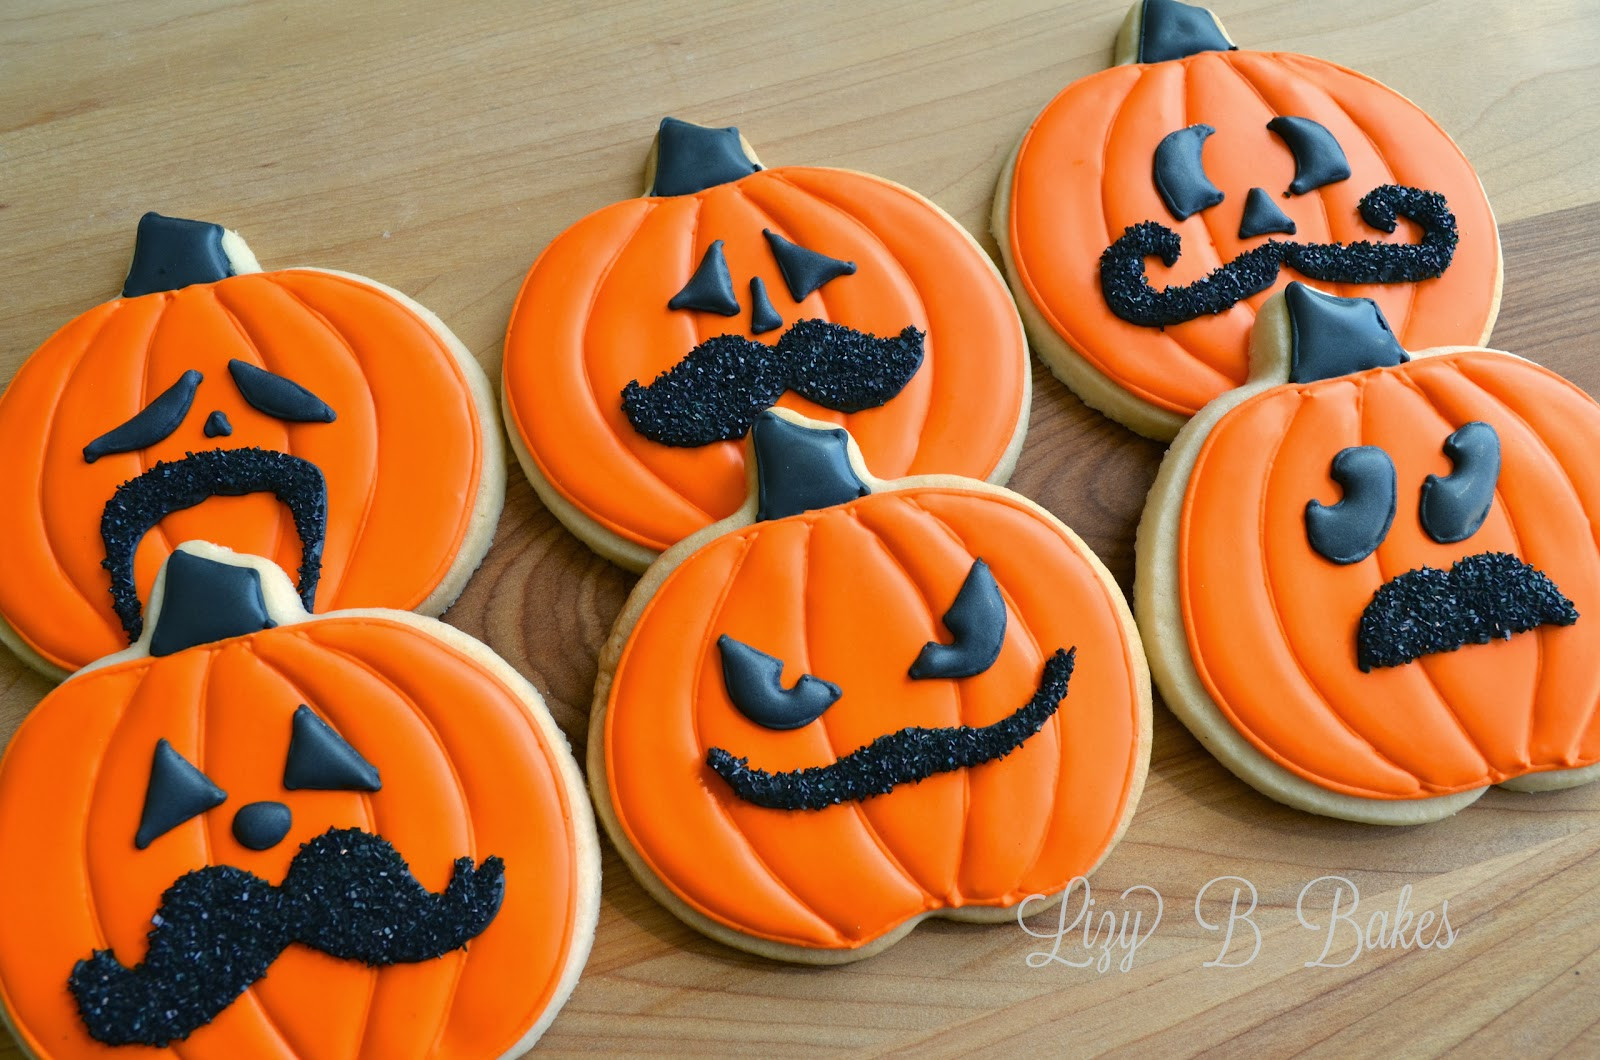 Pictures Of Halloween Cookies  Lizy B Halloween Mustache Cookies